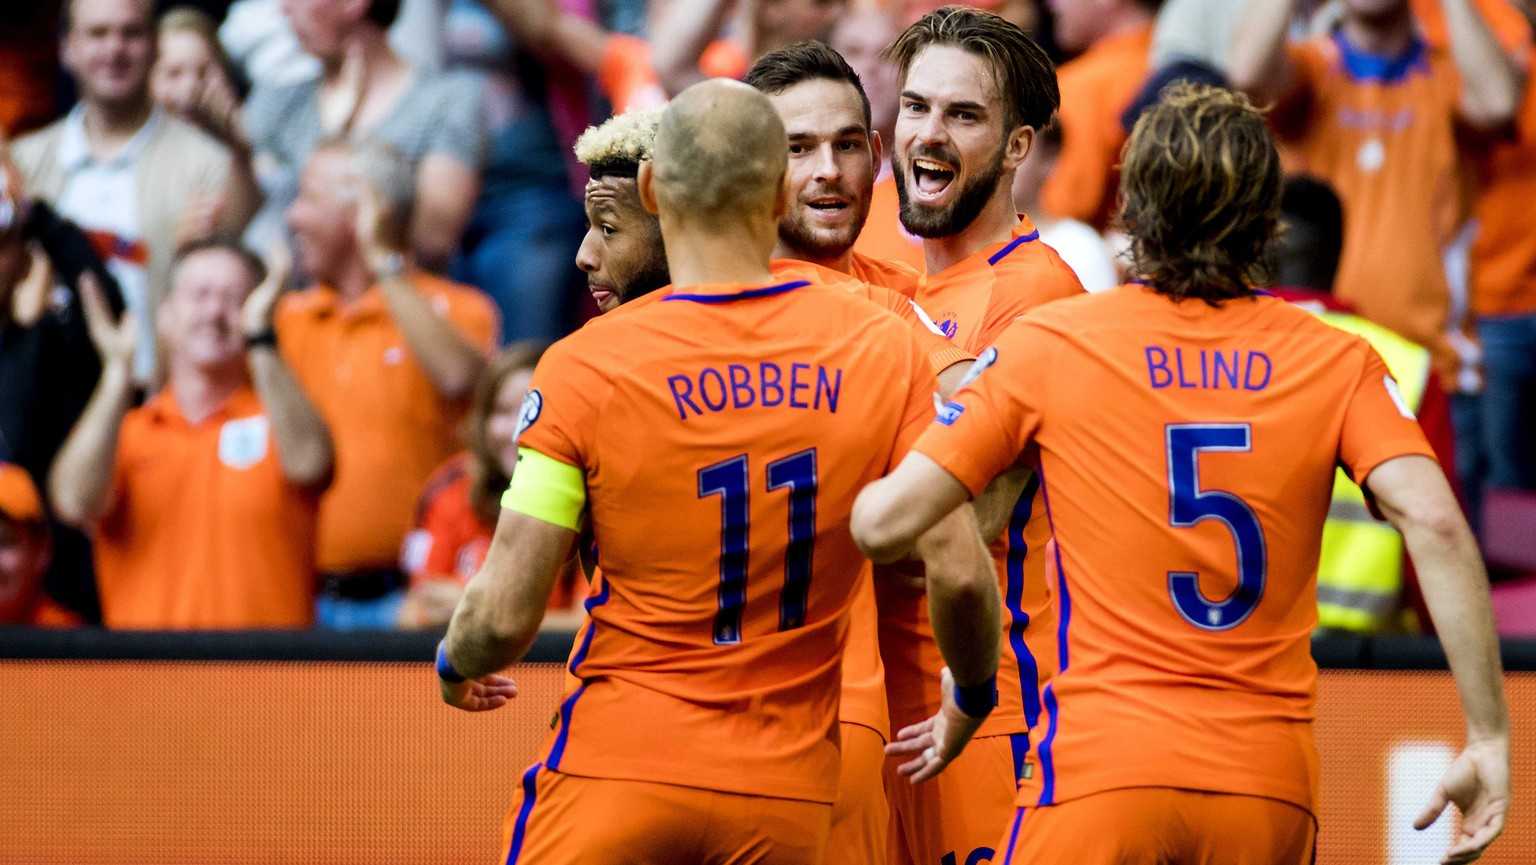 epa06181405 Dutch players celebrate during the FIFA World Cup qualifiication match between Netherlands and Bulgaria in Amsterdam, The Netherlands, 03 September.  EPA/Koen van Weel